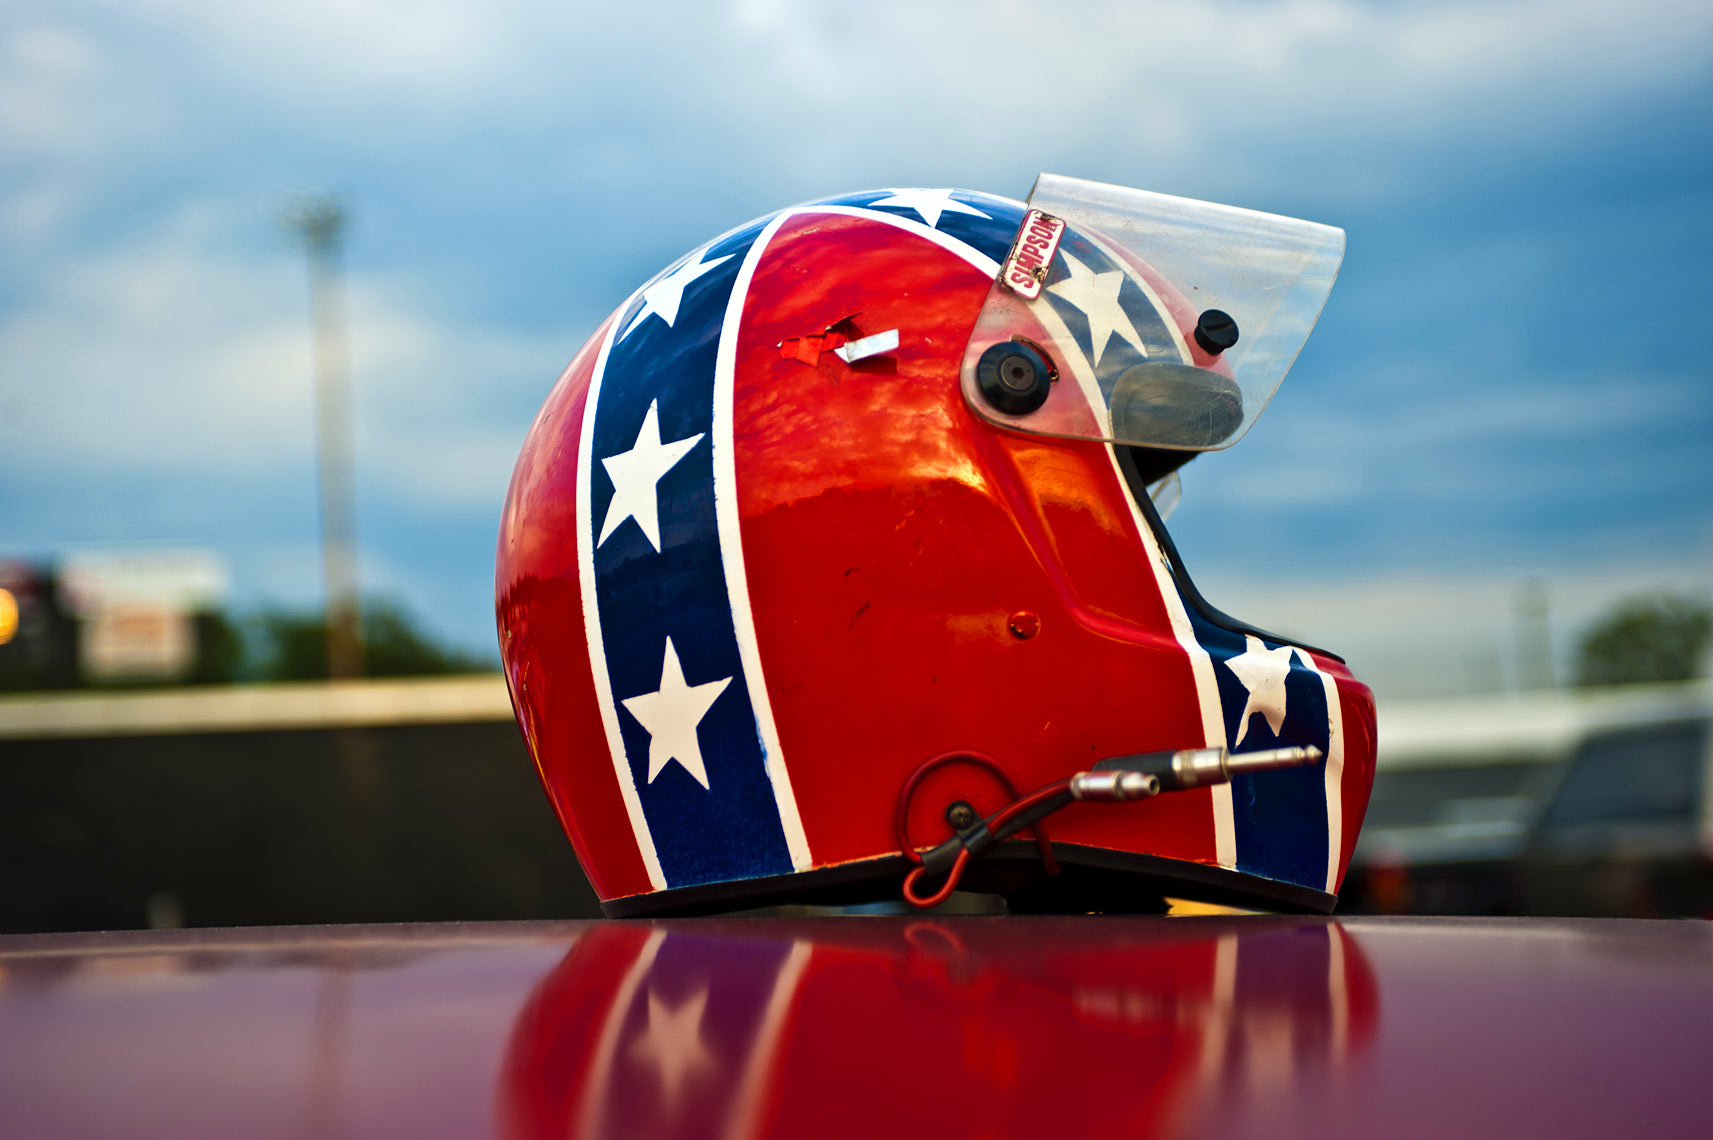 Nascar helmet on car roof at Orange County speedway